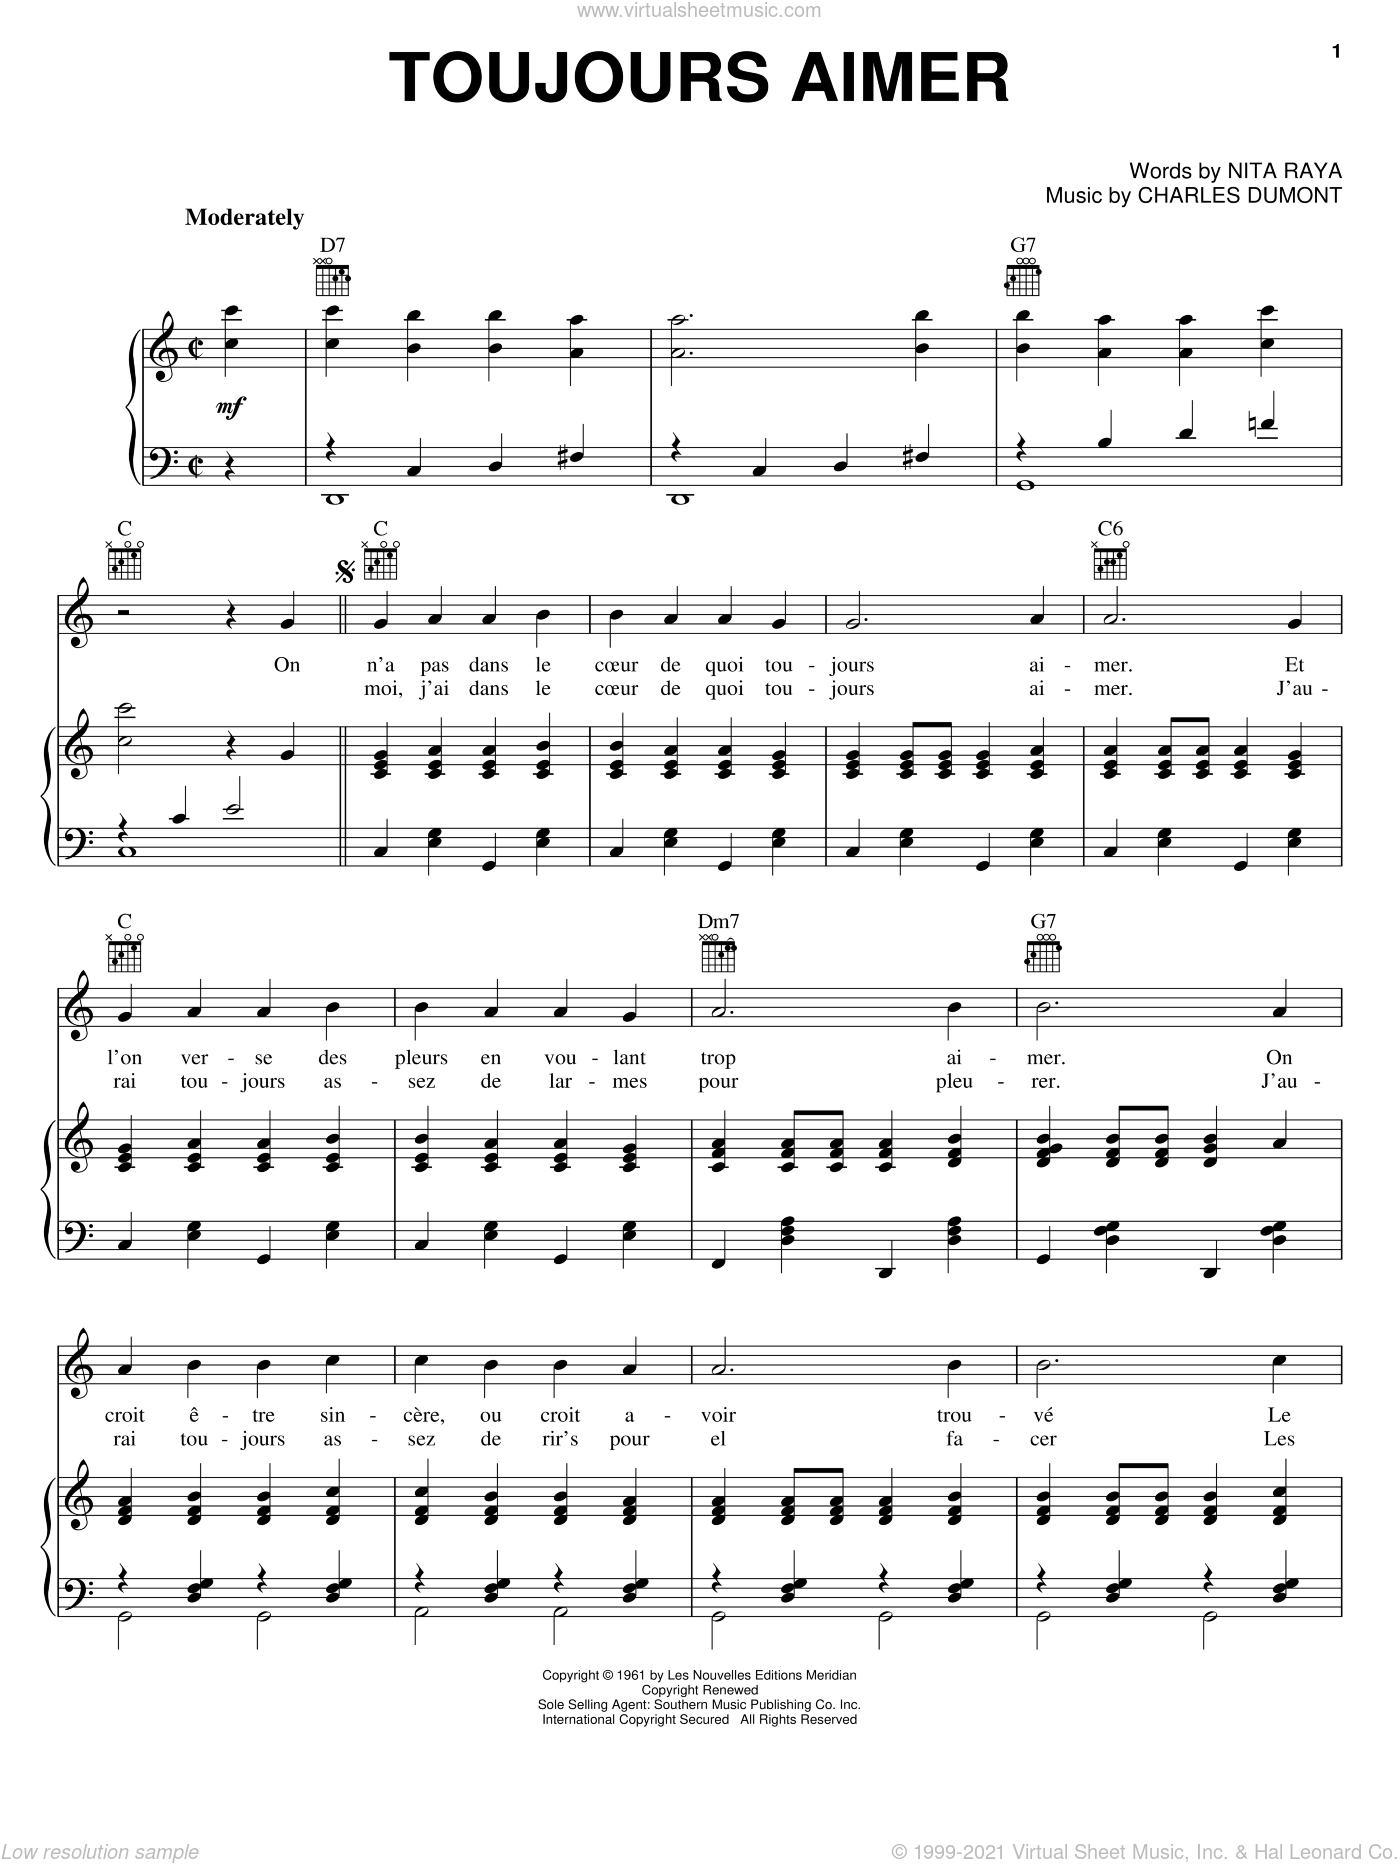 Toujours Aimer sheet music for voice, piano or guitar by Nita Raya